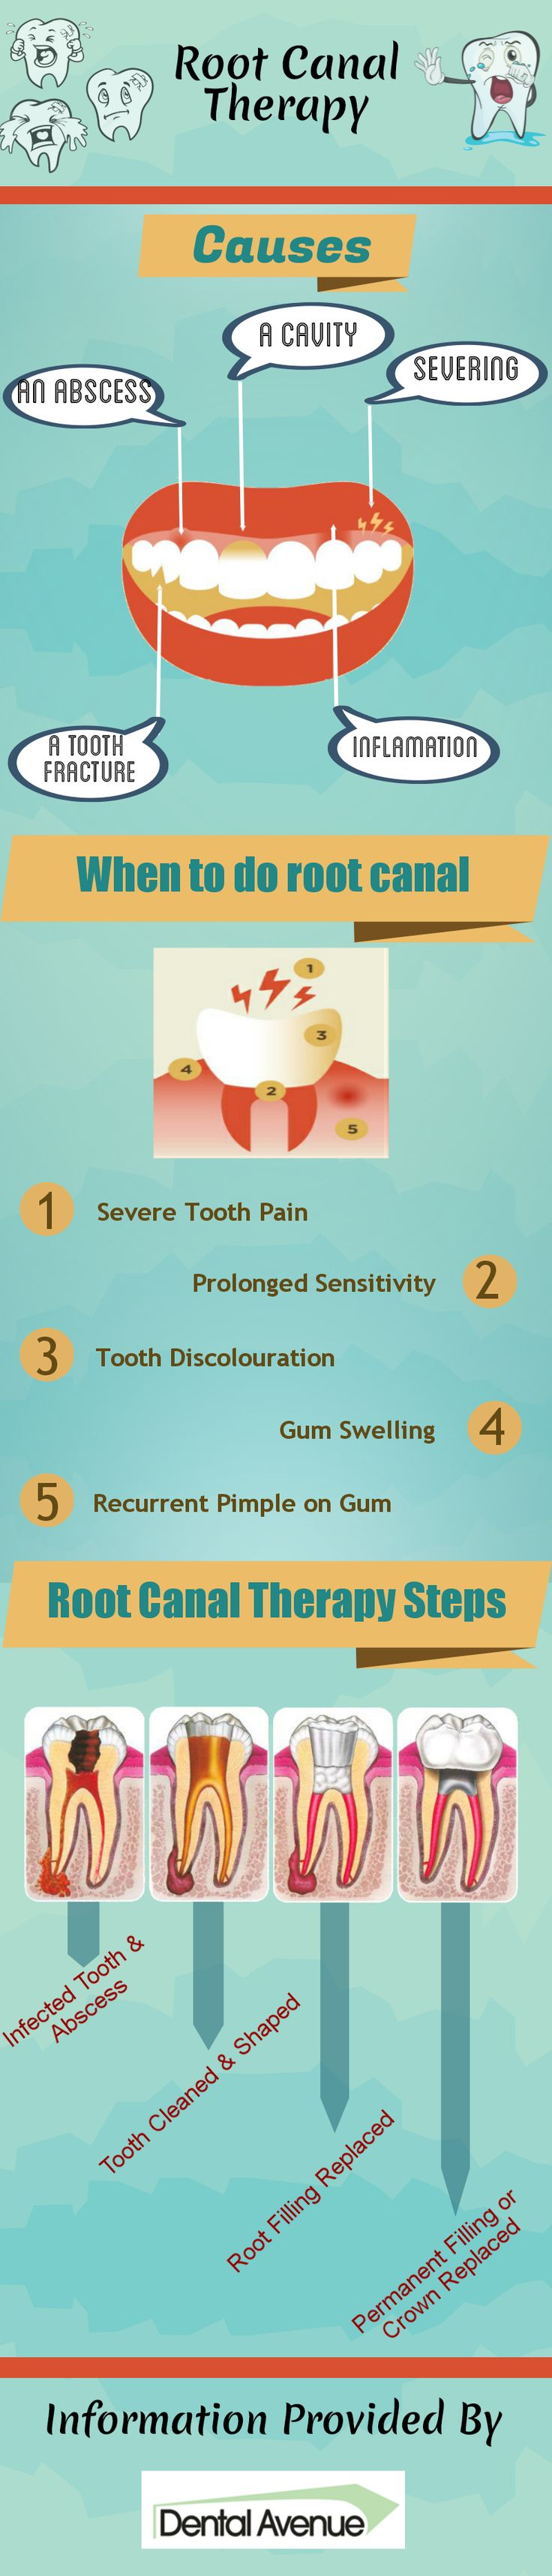 Root canal is an important dental treatment. This treatment is undertaken for treating severe tooth pain, sensitivity, discolouration, gum pimples and swelling of gums. In this procedure the diseased pulp of a tooth is removed and the inside areas are filled and sealed.